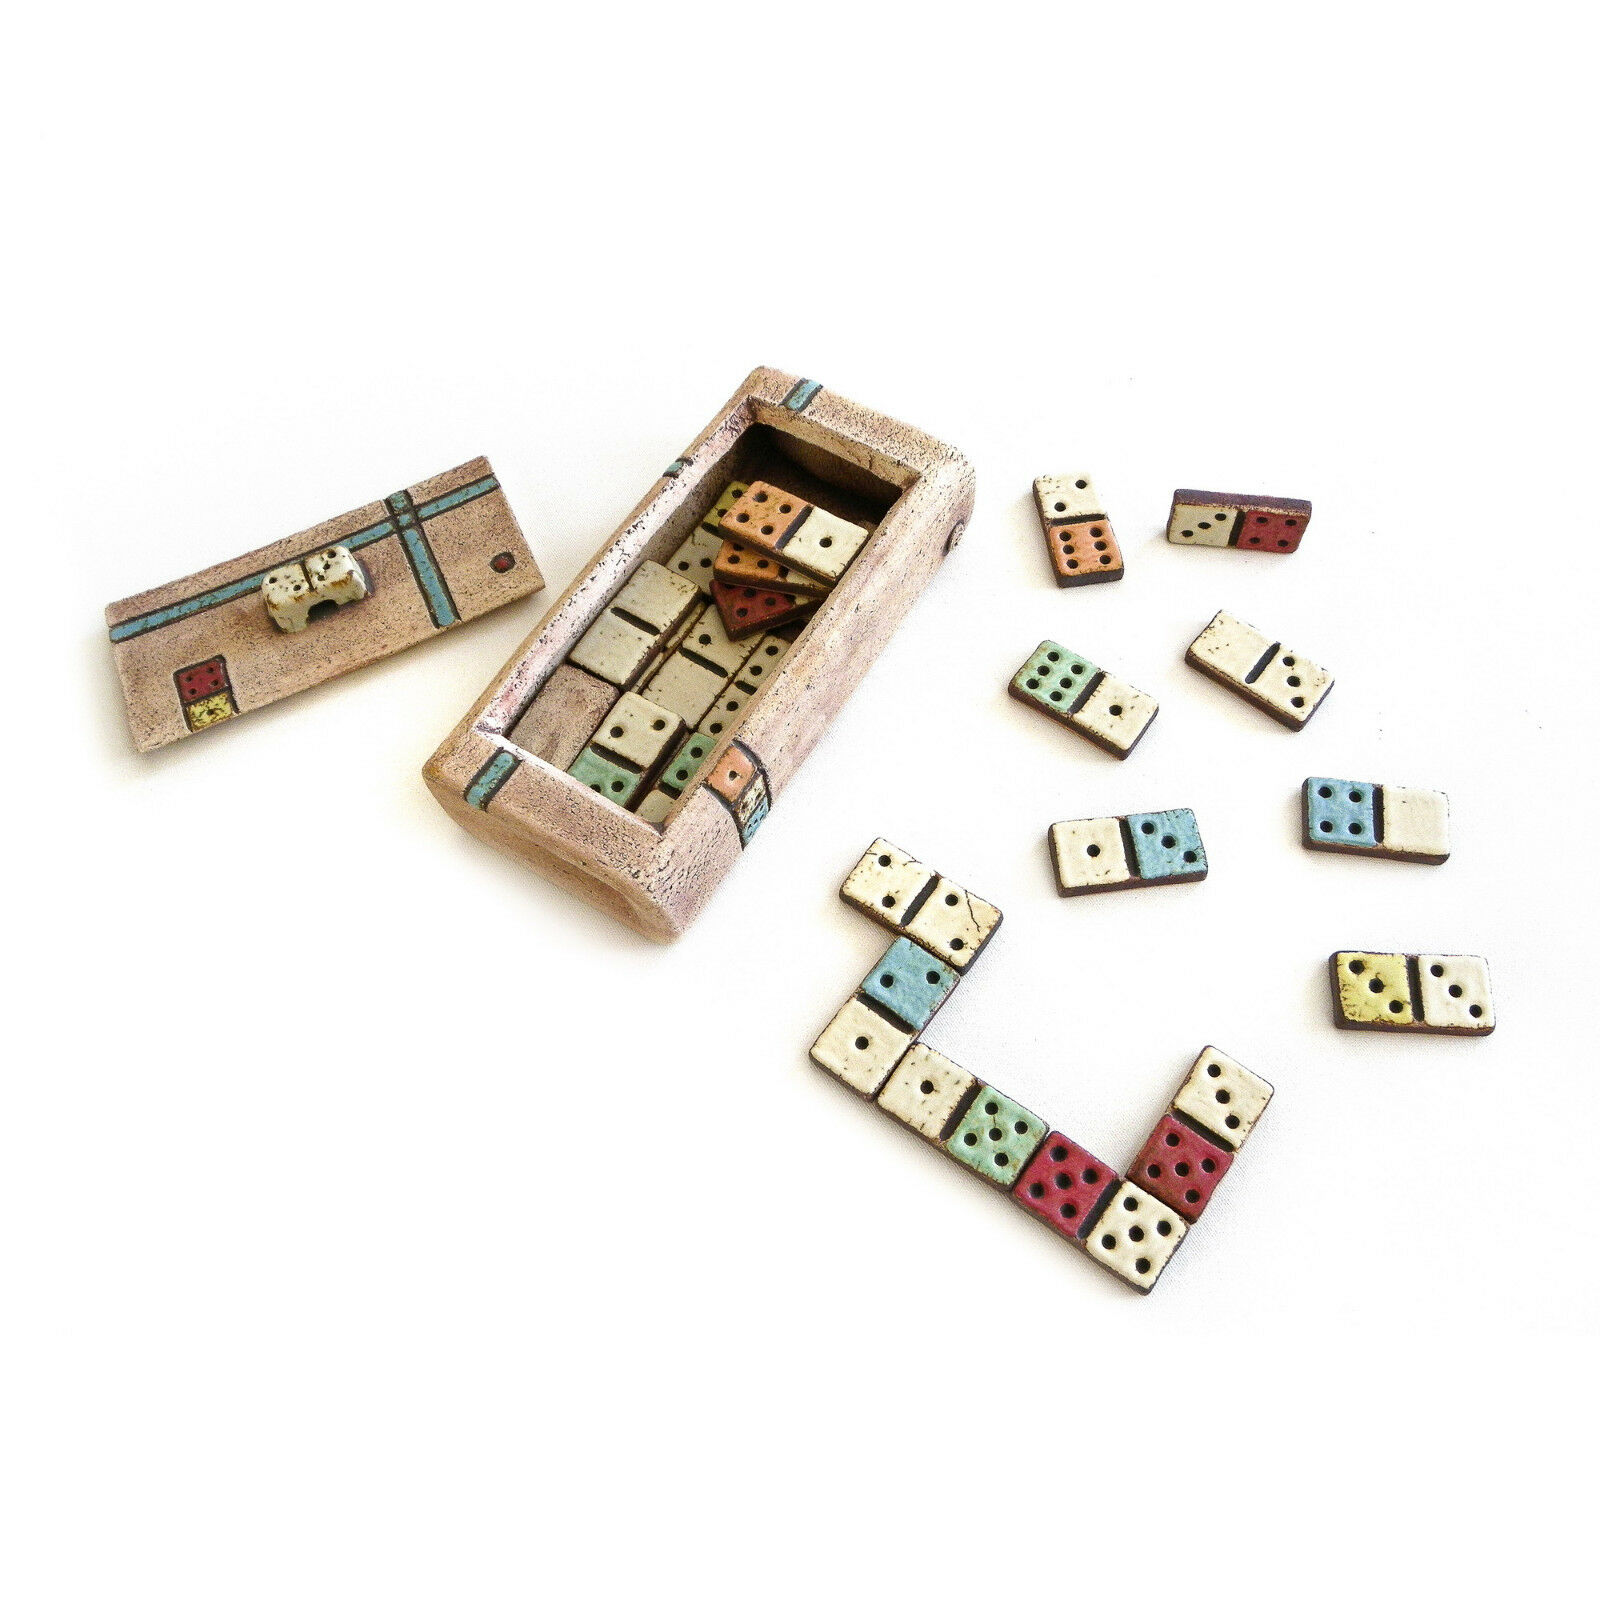 Dominoes Decorative Board Game - Handmade Ceramic - Double 6 - Replica Set